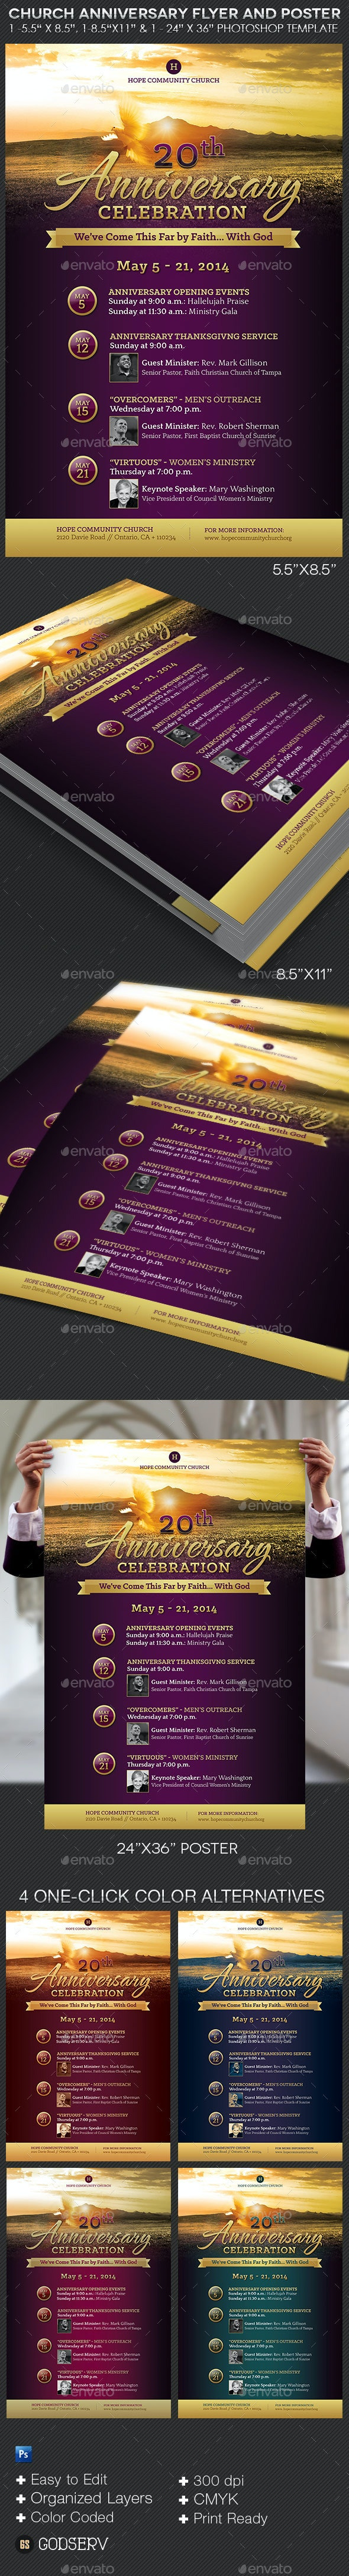 Church Anniversary Flyer Poster Template - Church Flyers